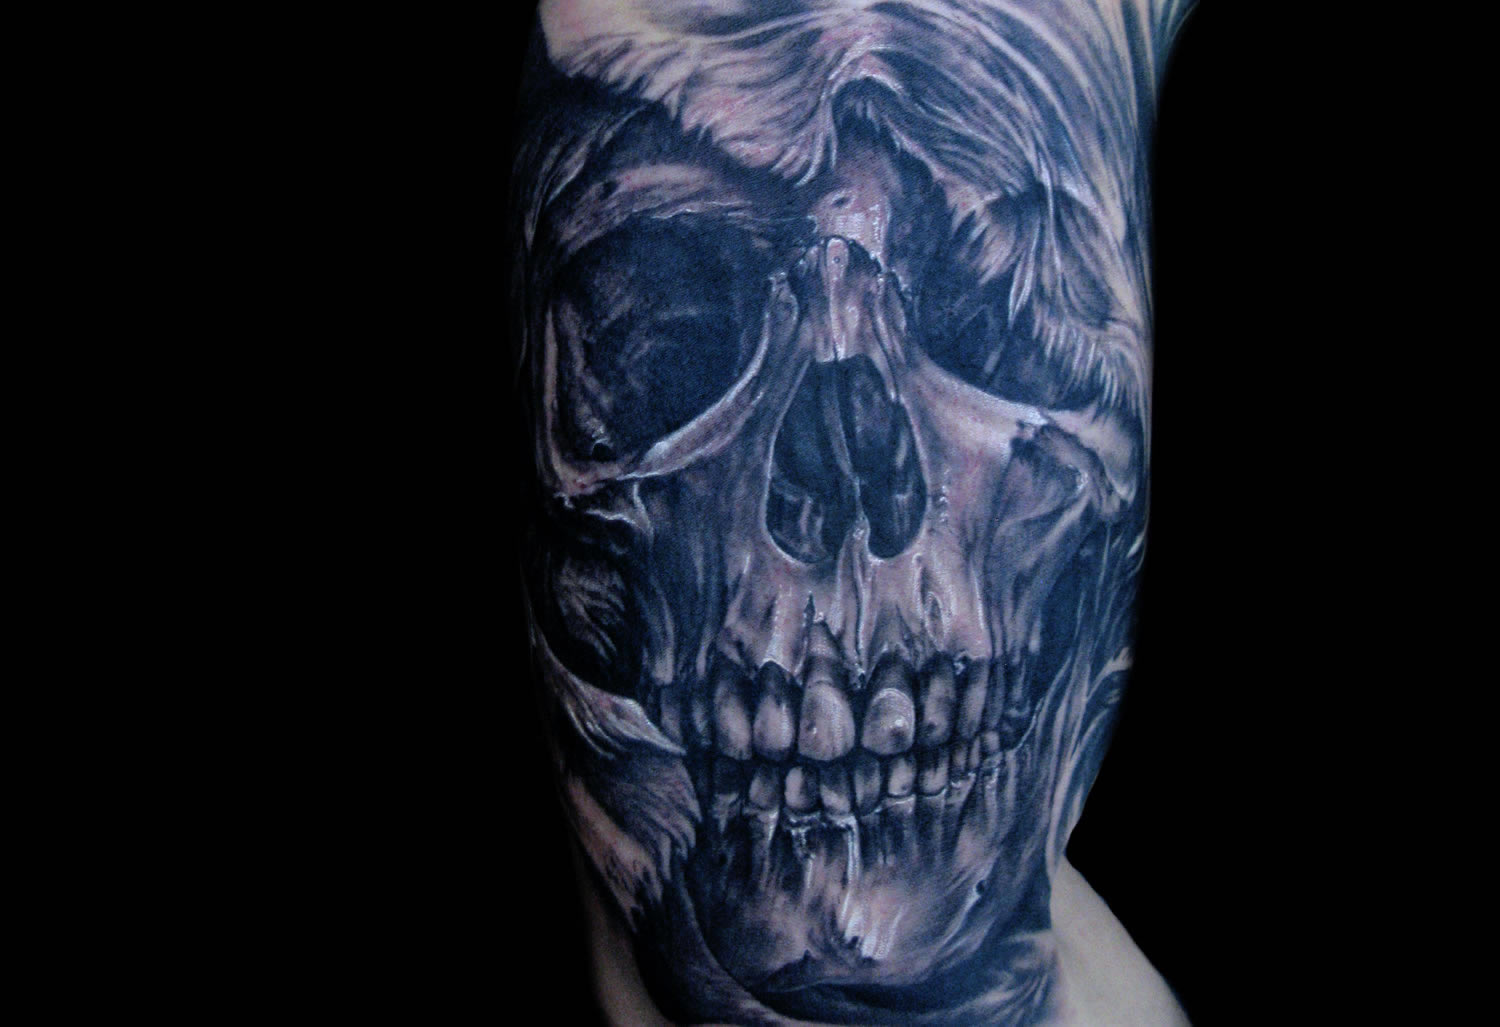 Tony-Mancia-tattoo 9